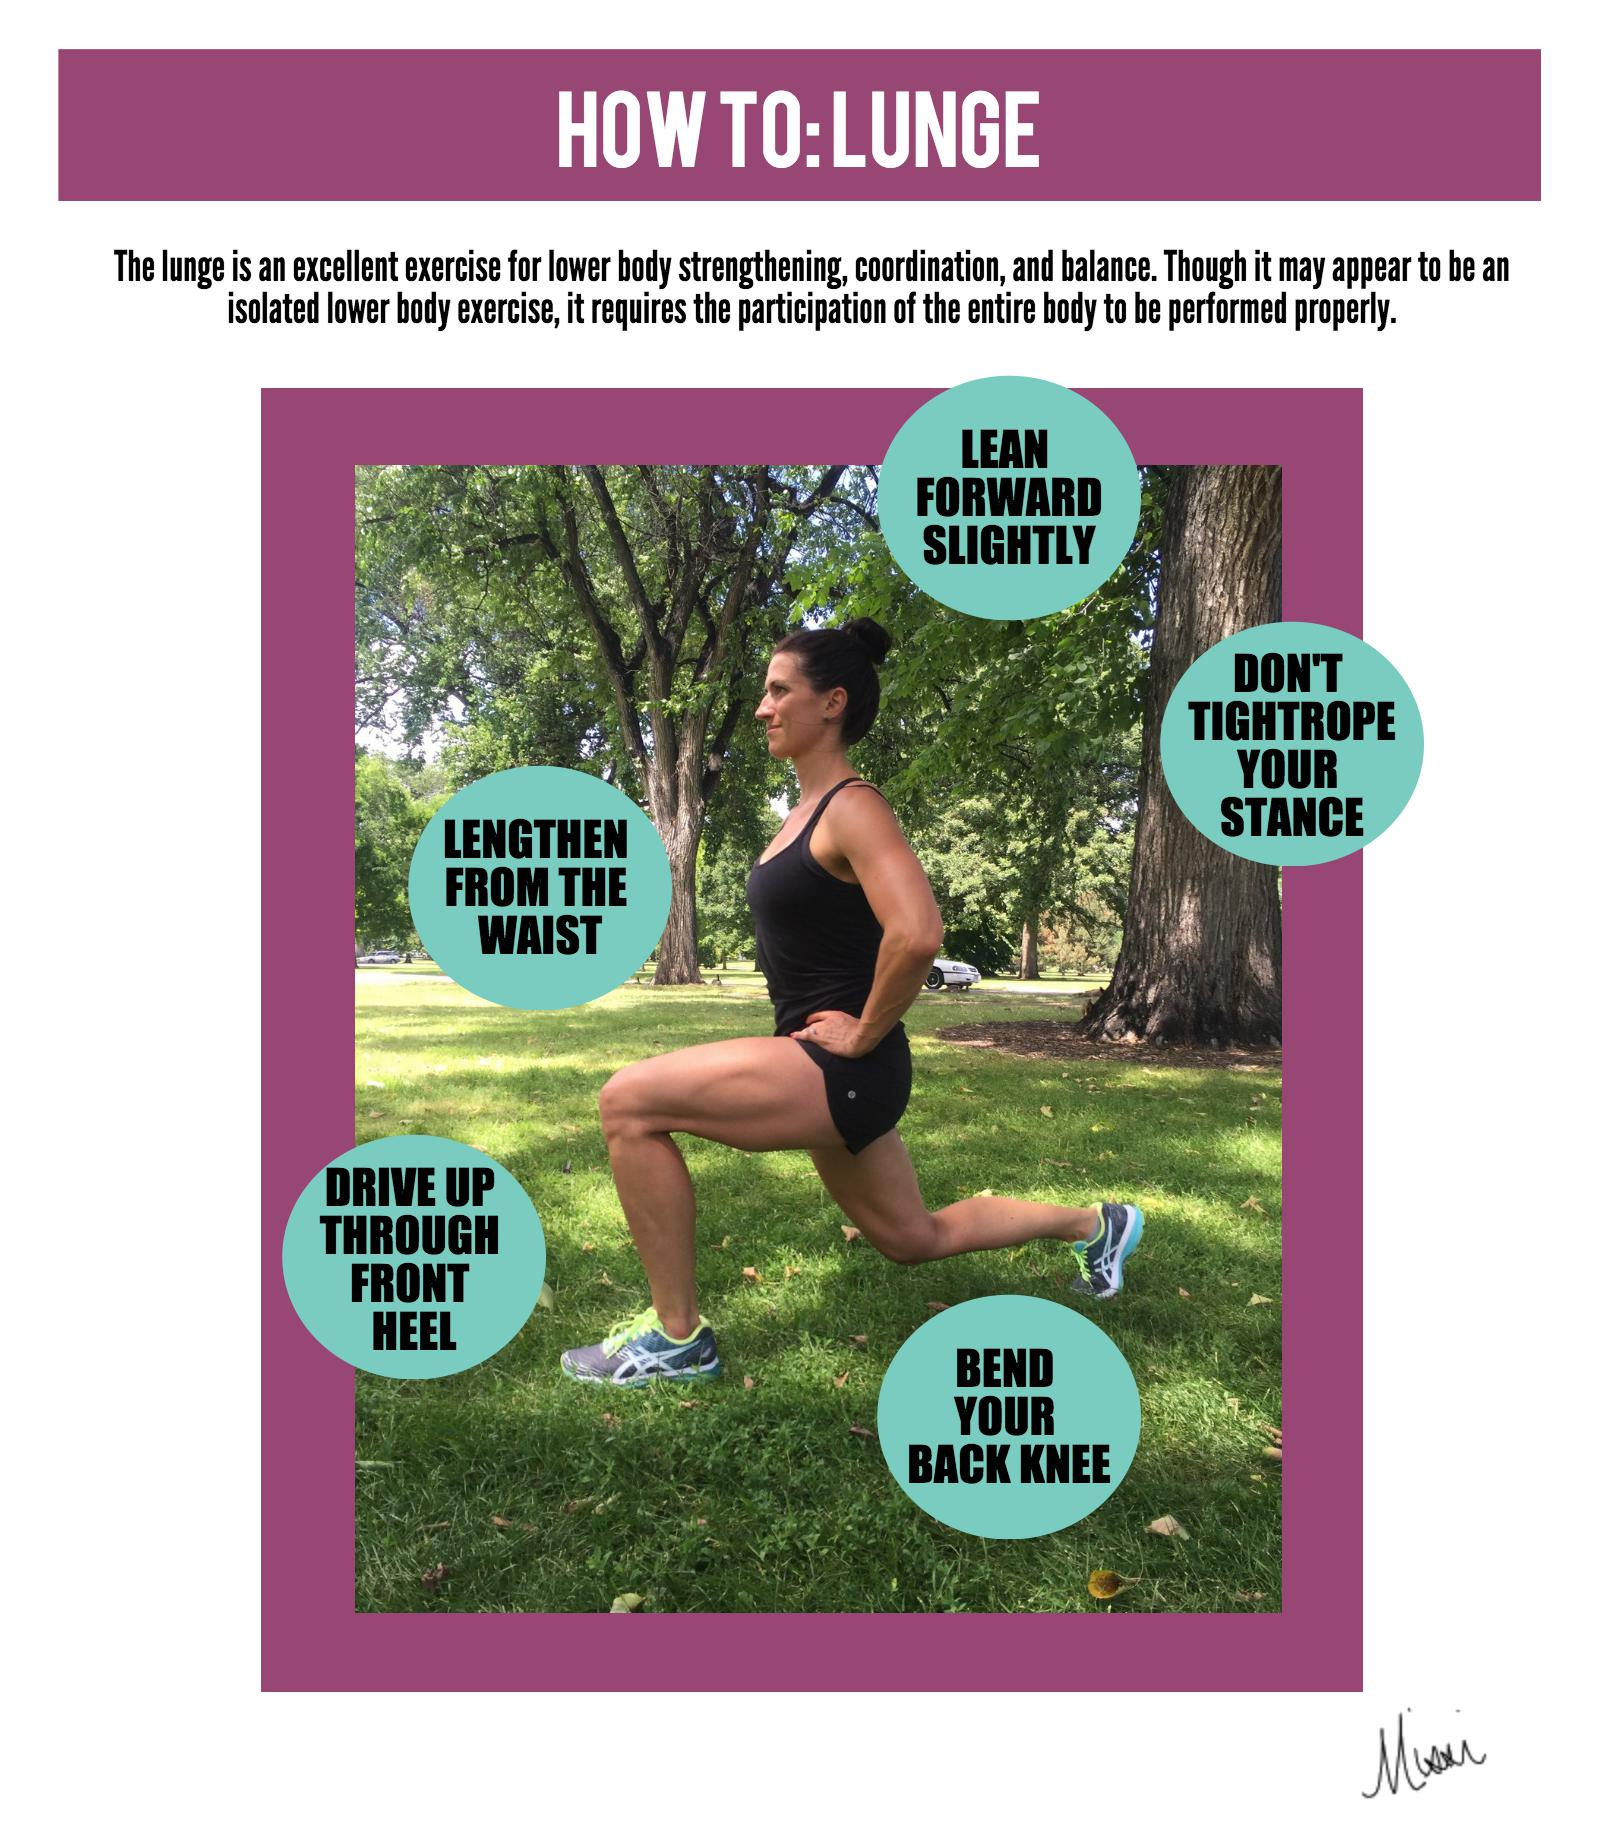 Misunderstood Exercise: Breakdown of the Proper Lunge